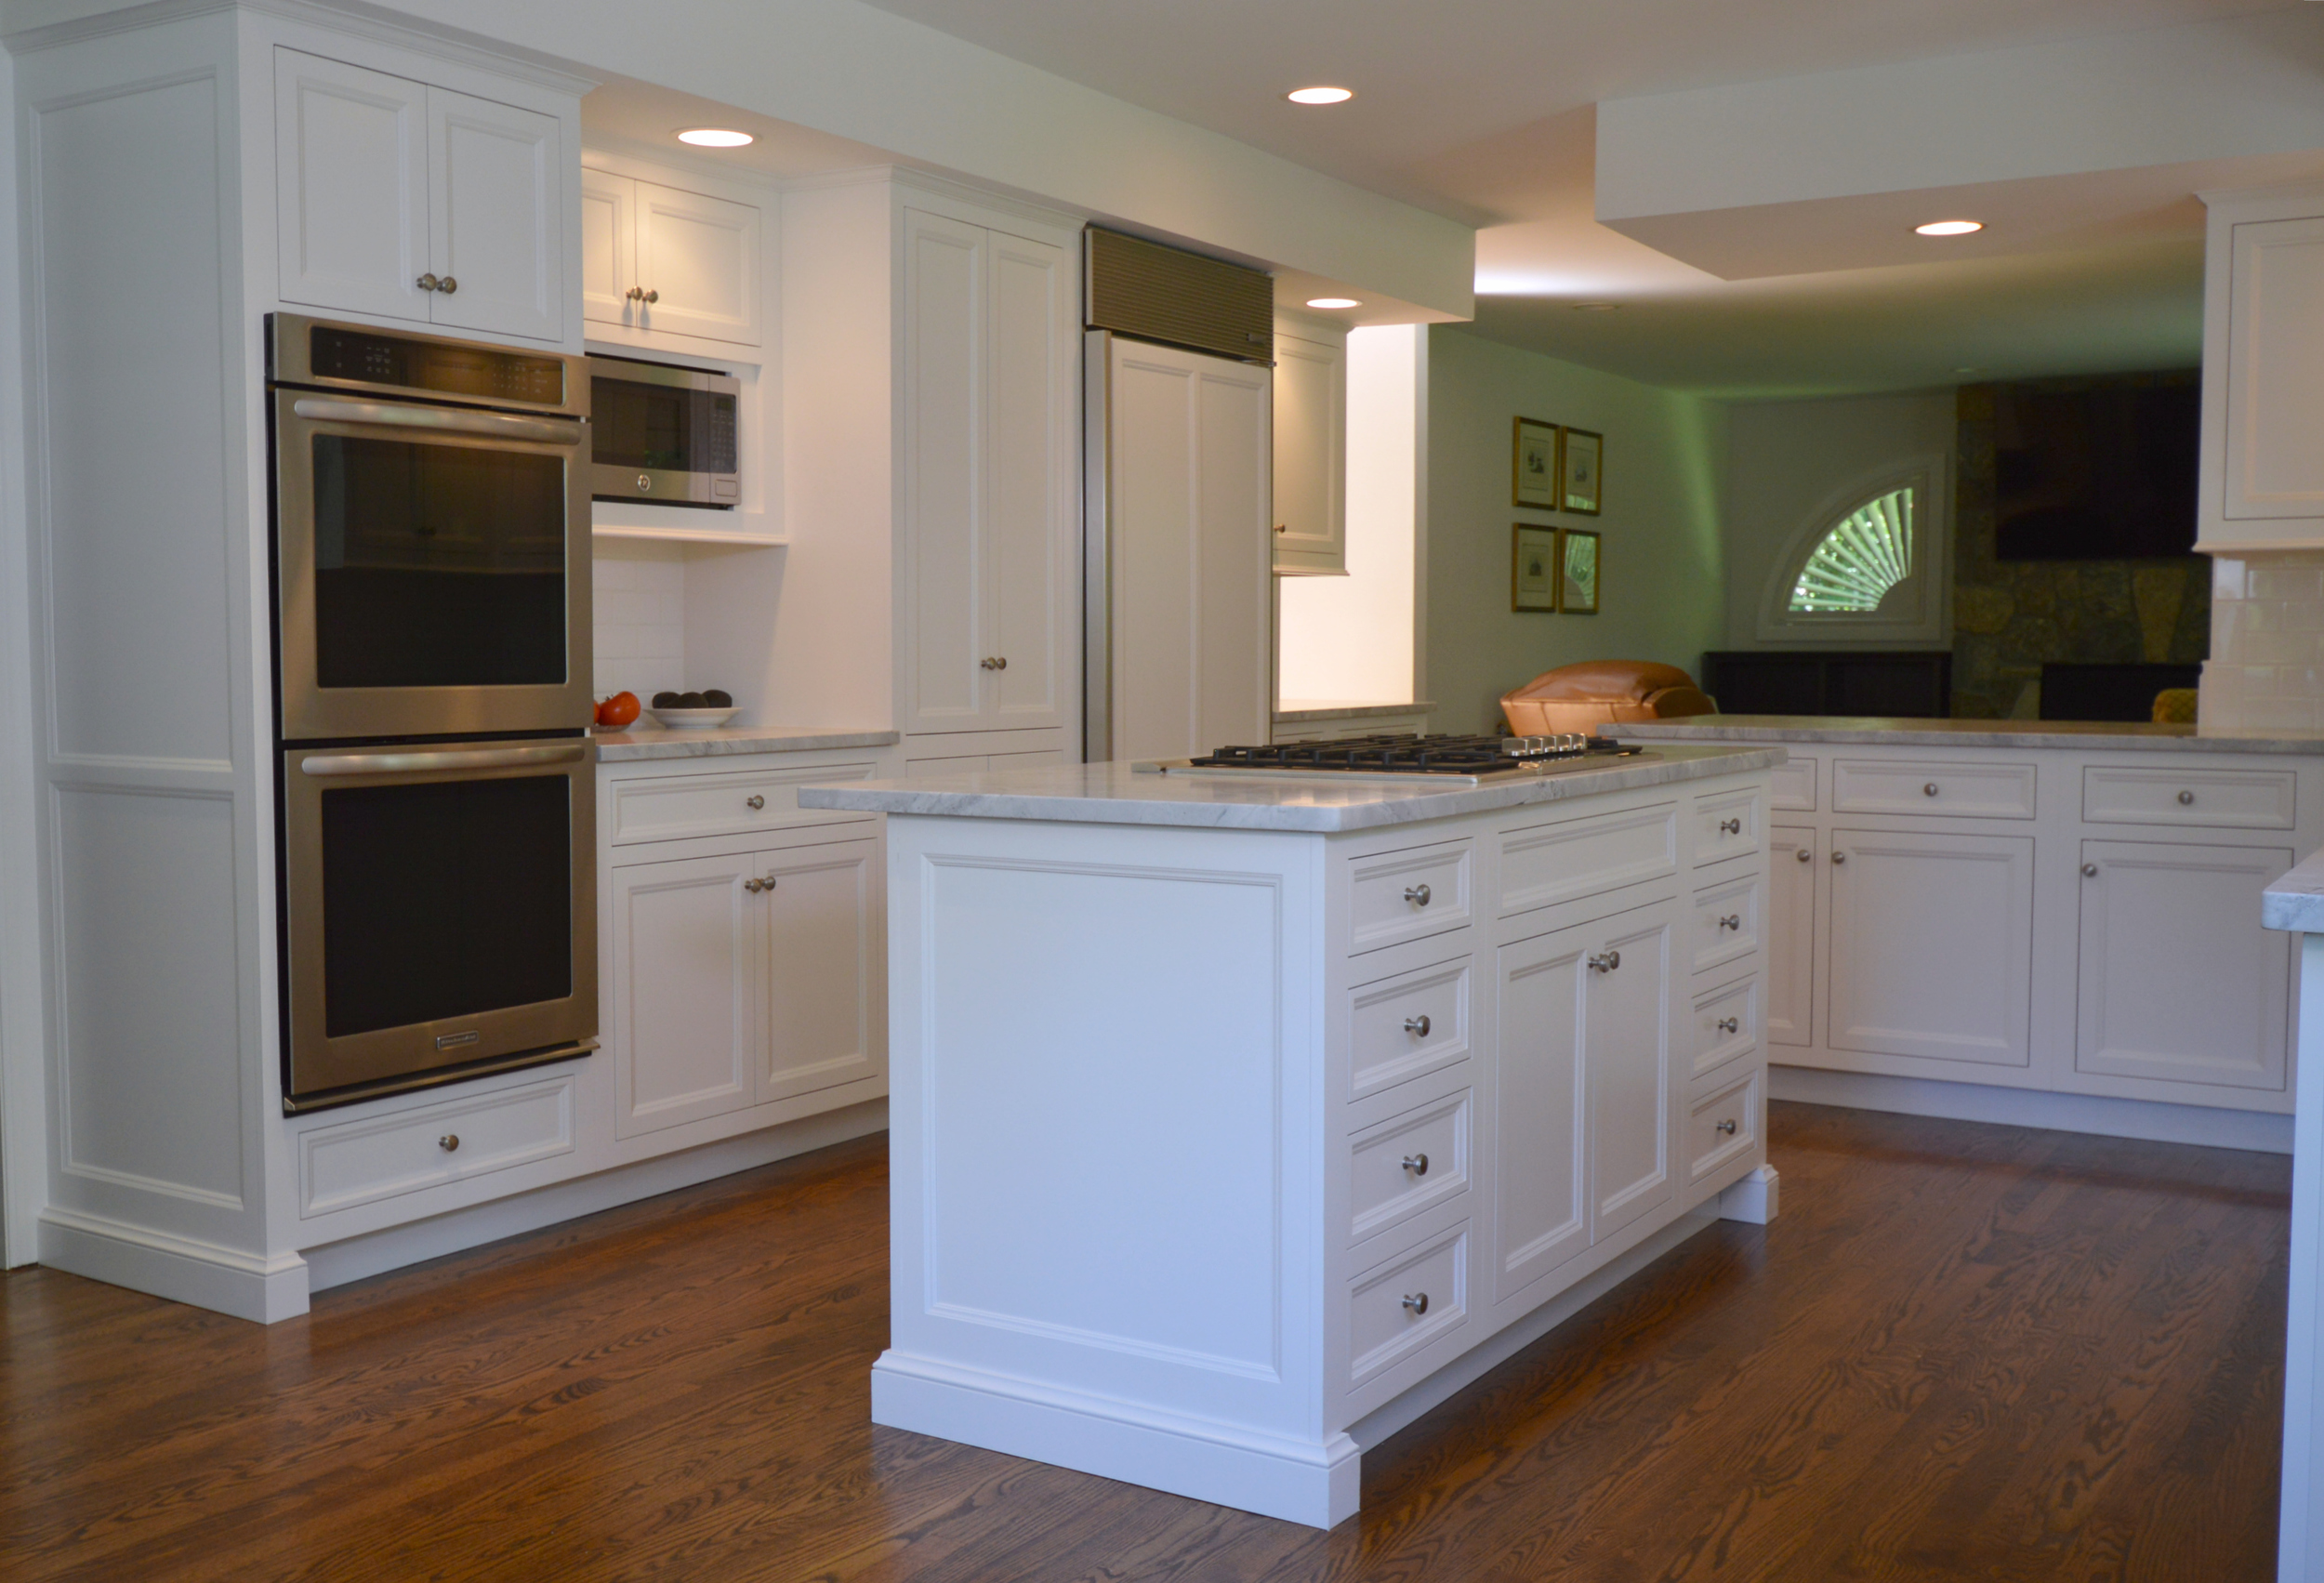 Custom Kitchen Remodel on Conrad Road in New Canaan CT